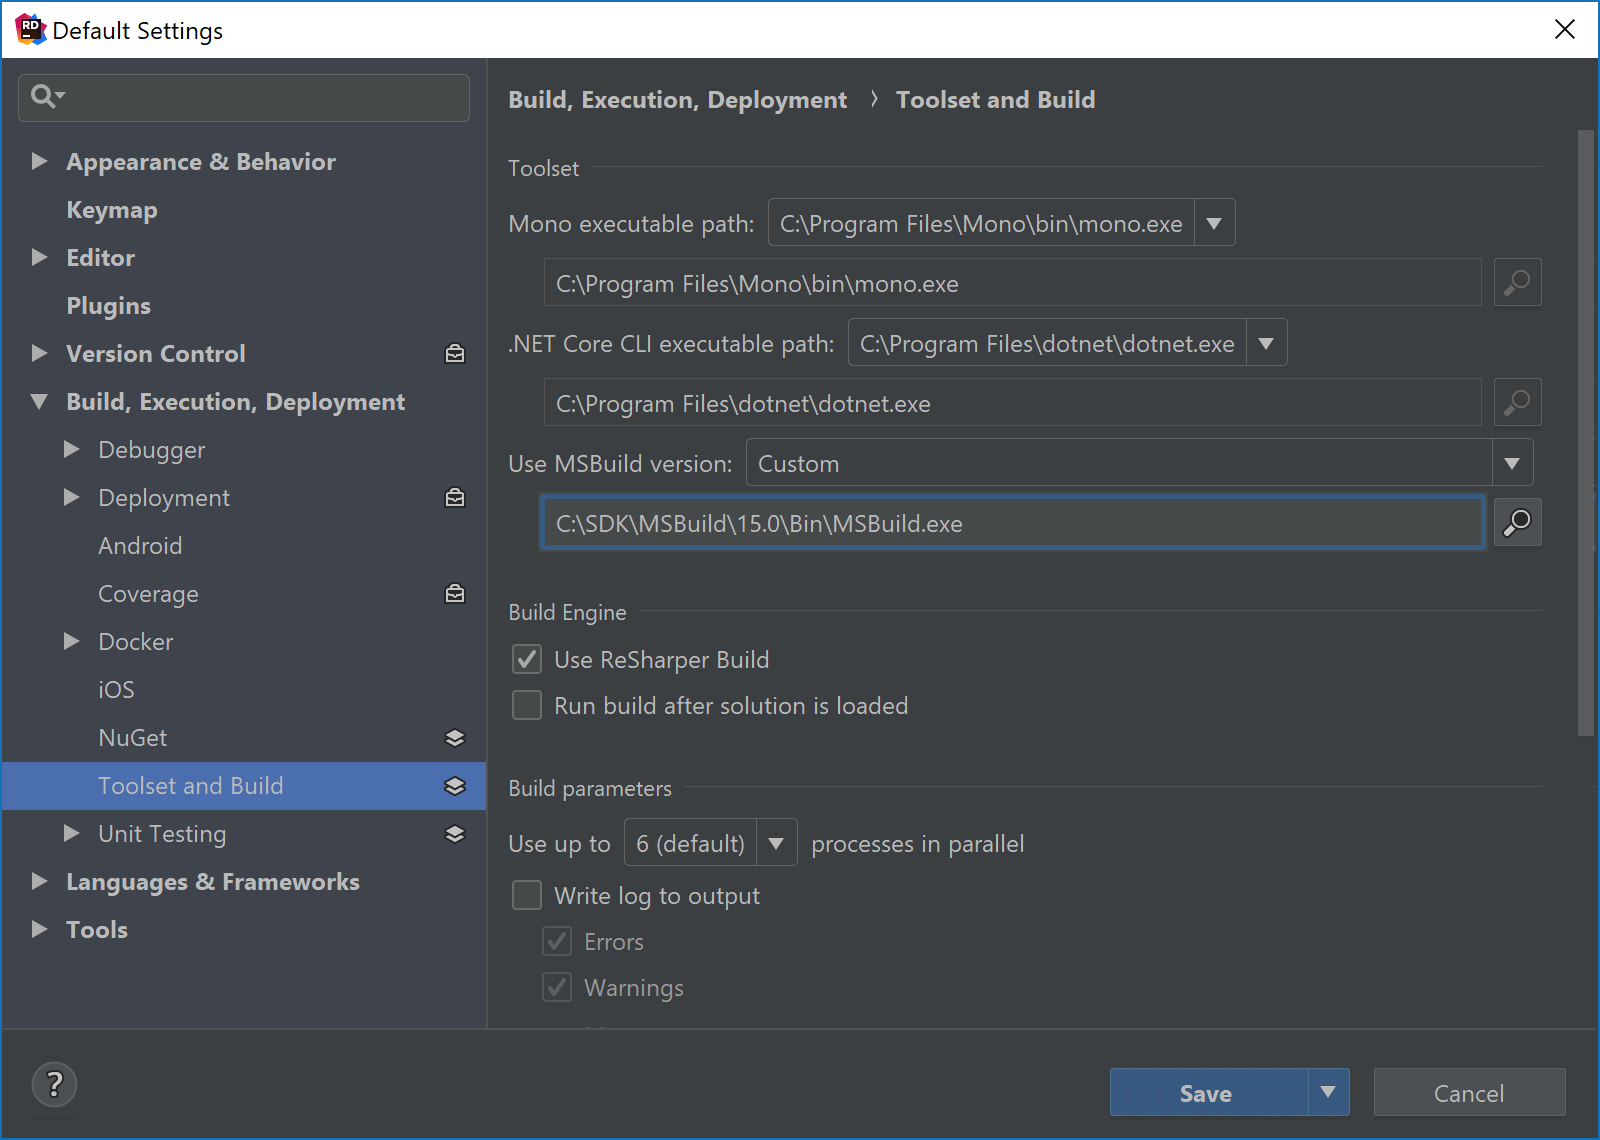 Set custom MSBuild version in JetBrains Rider